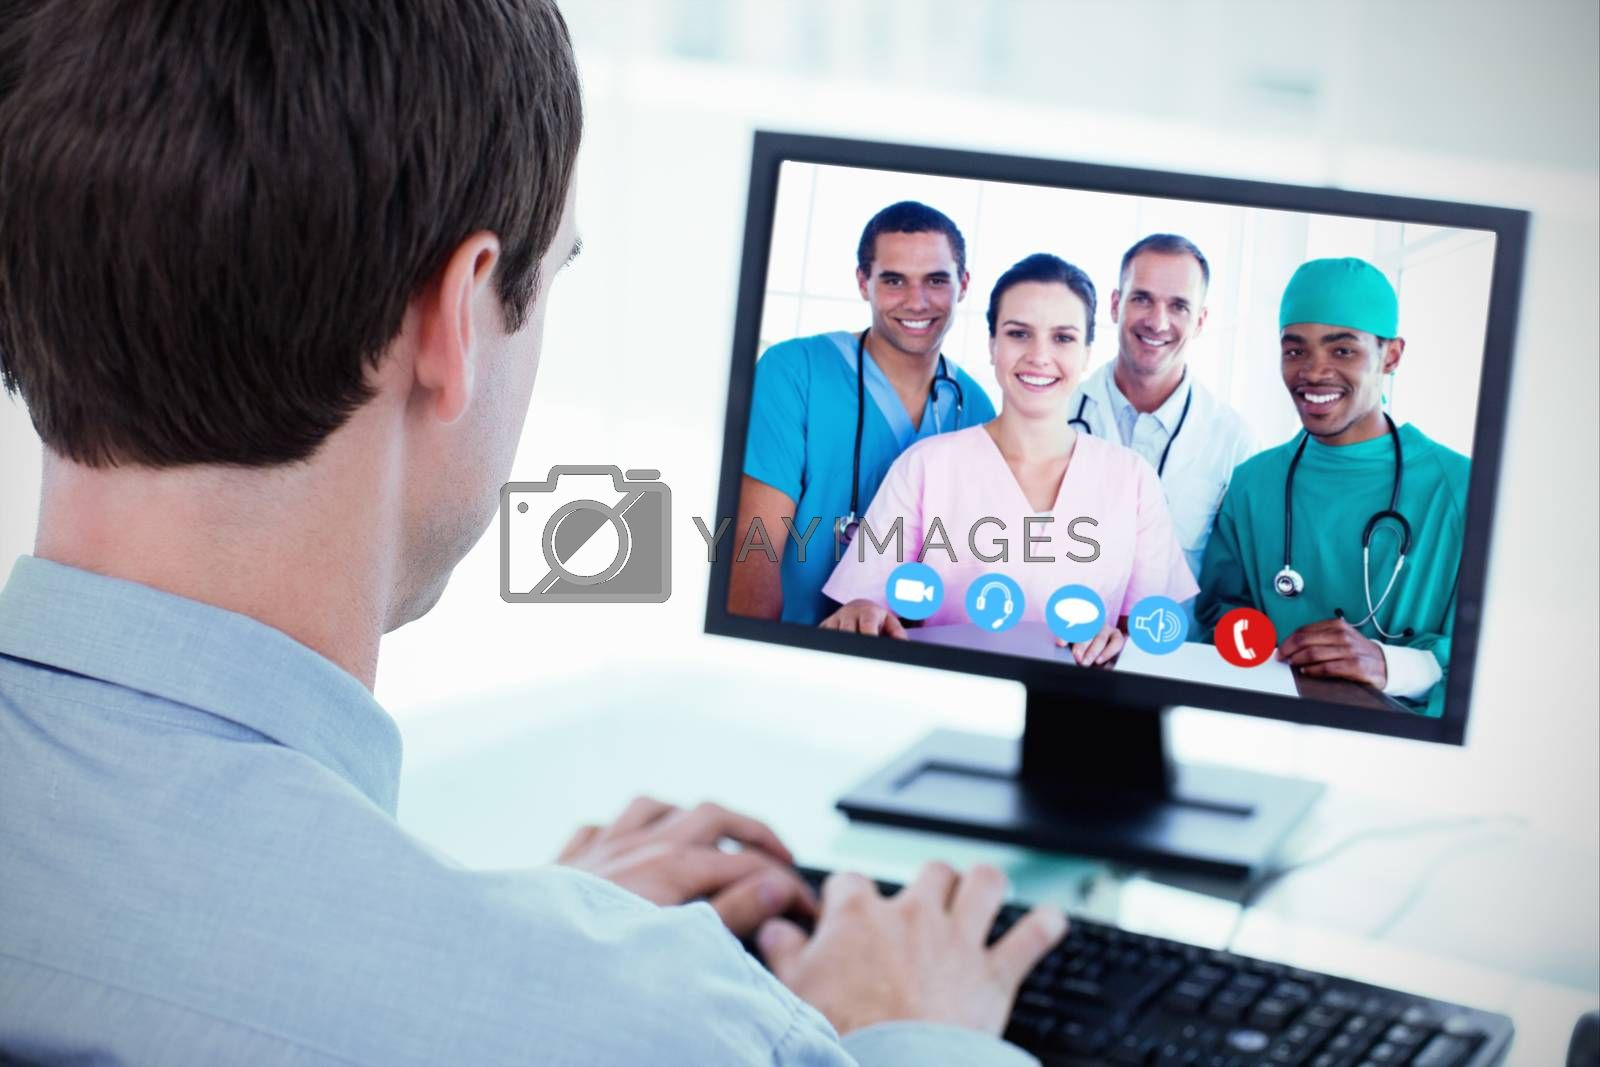 Portrait of a successful medical team at work against back view of a businessman working with a computer